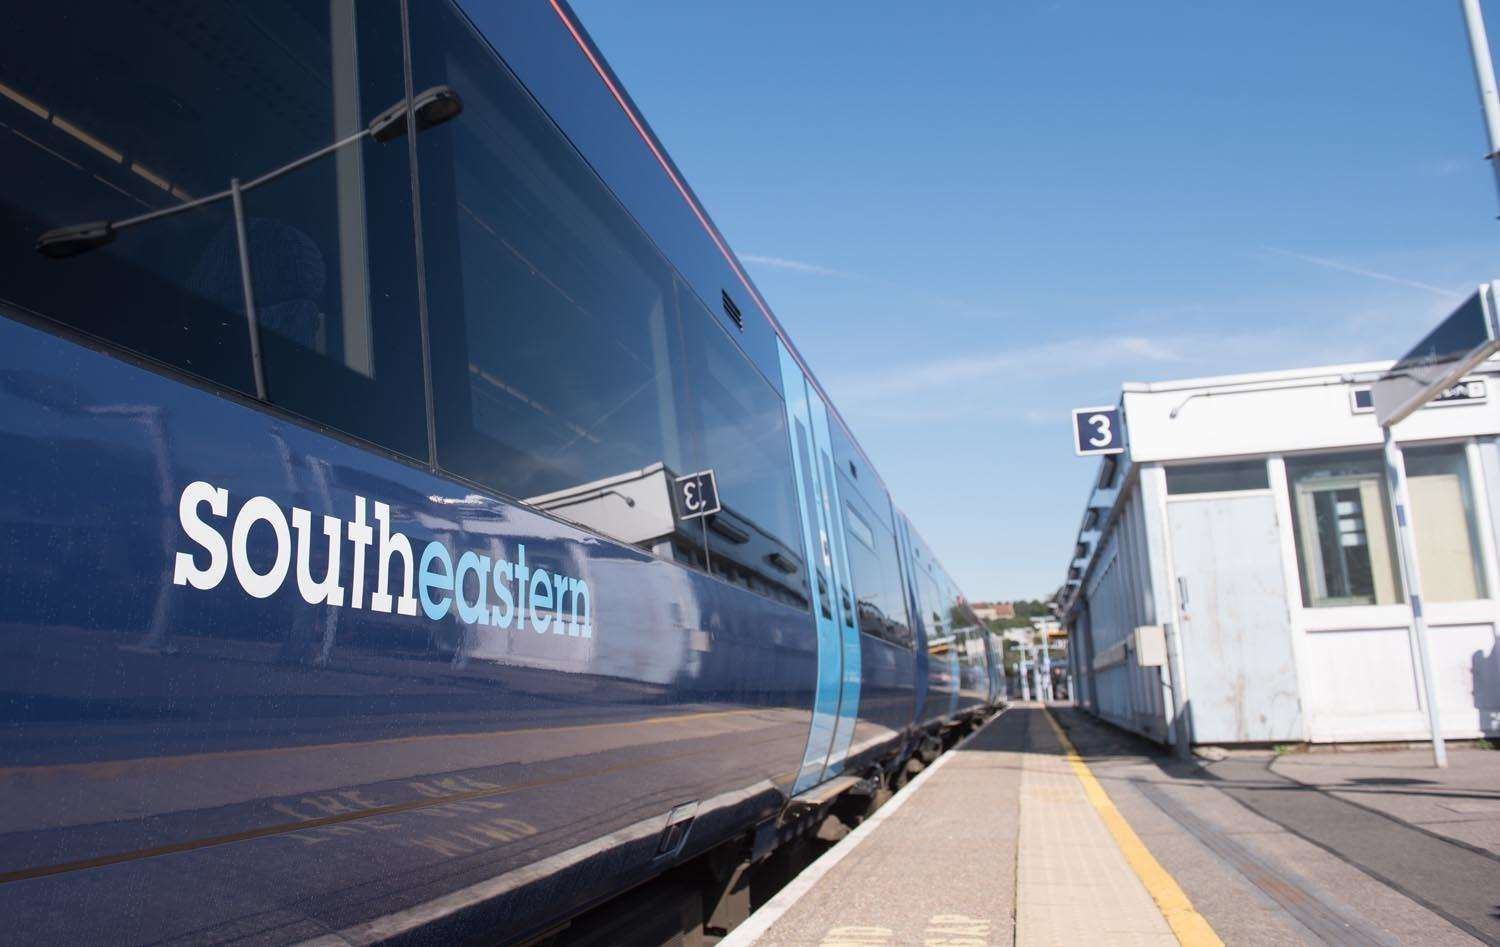 Southeastern are proving replacement buses after trains were forced to stop running. Stock image